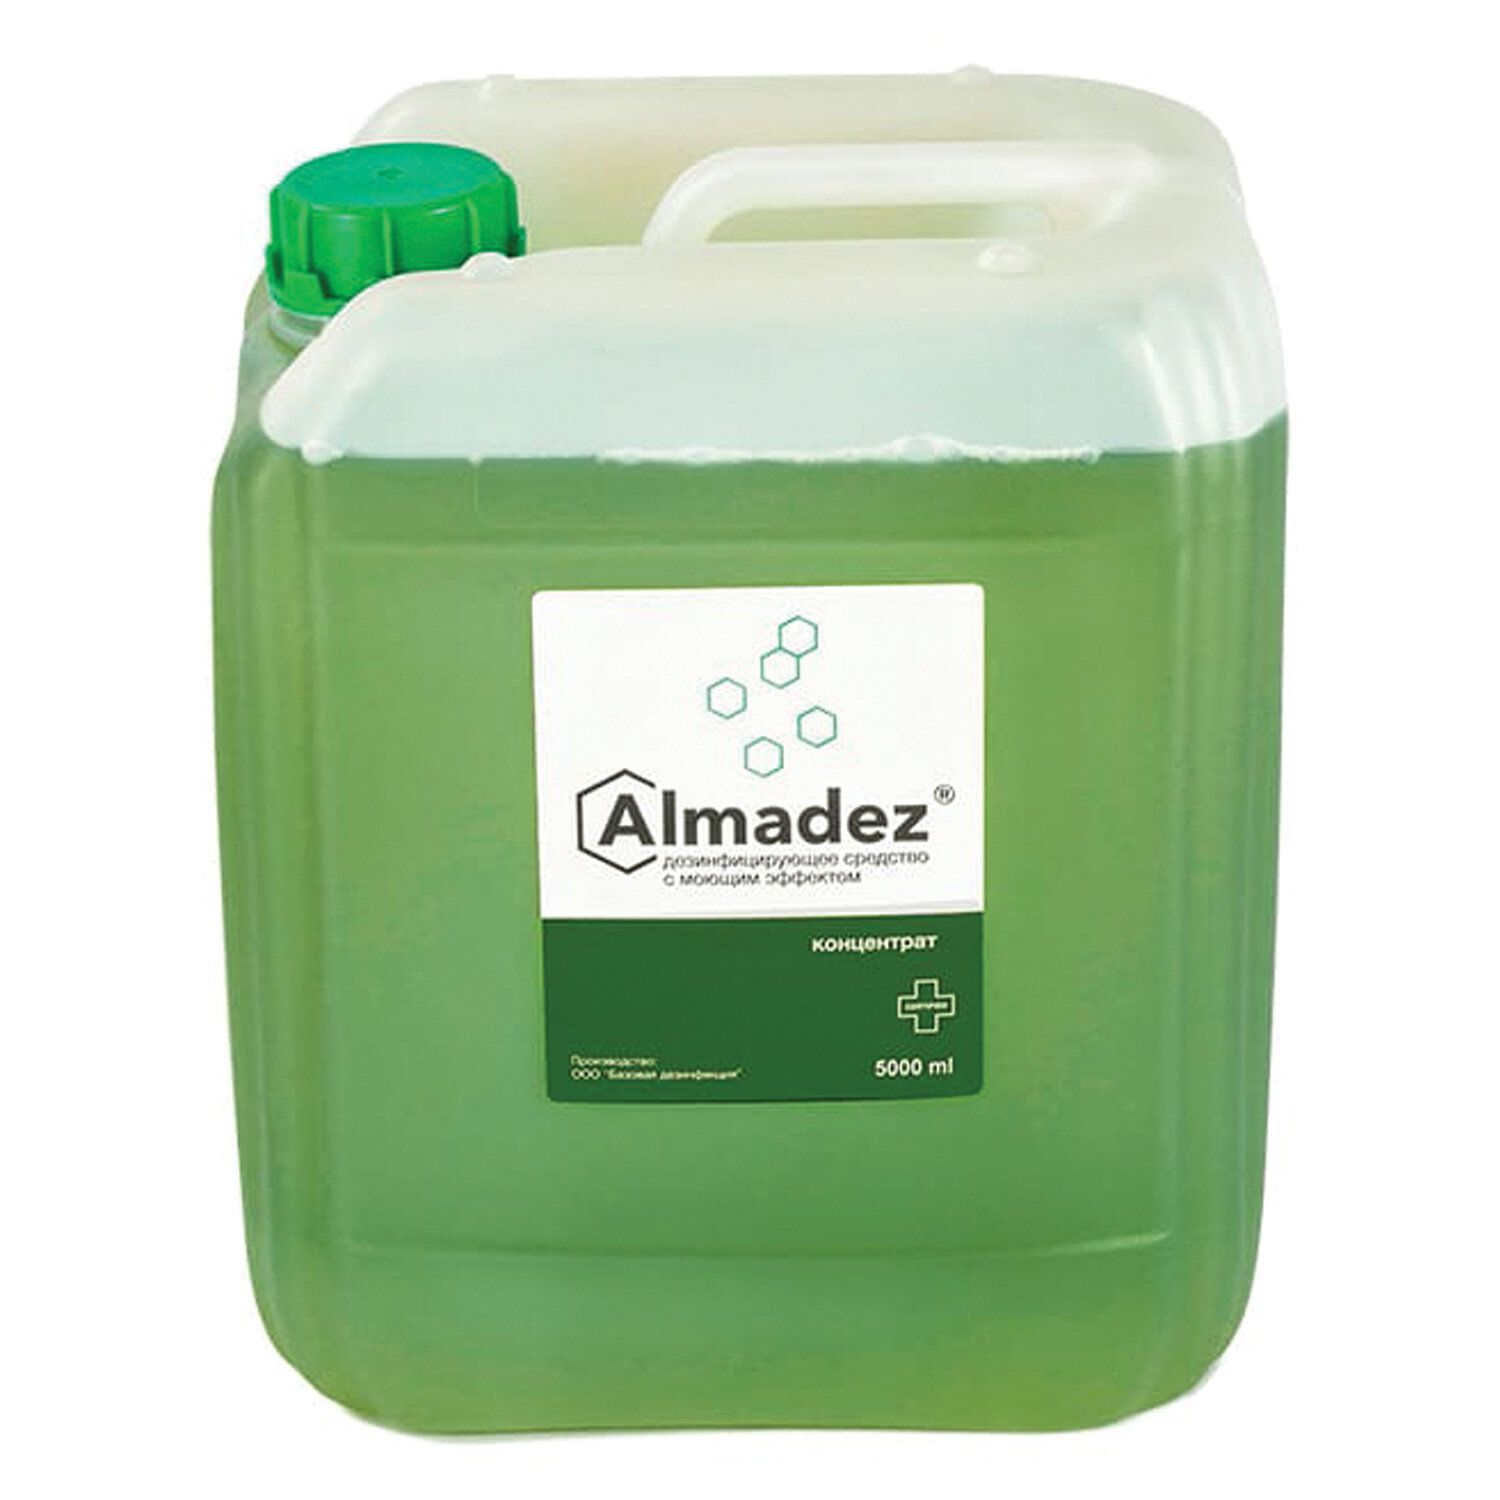 ALMADEZ / Disinfectant with washing effect, concentrate, 5 l